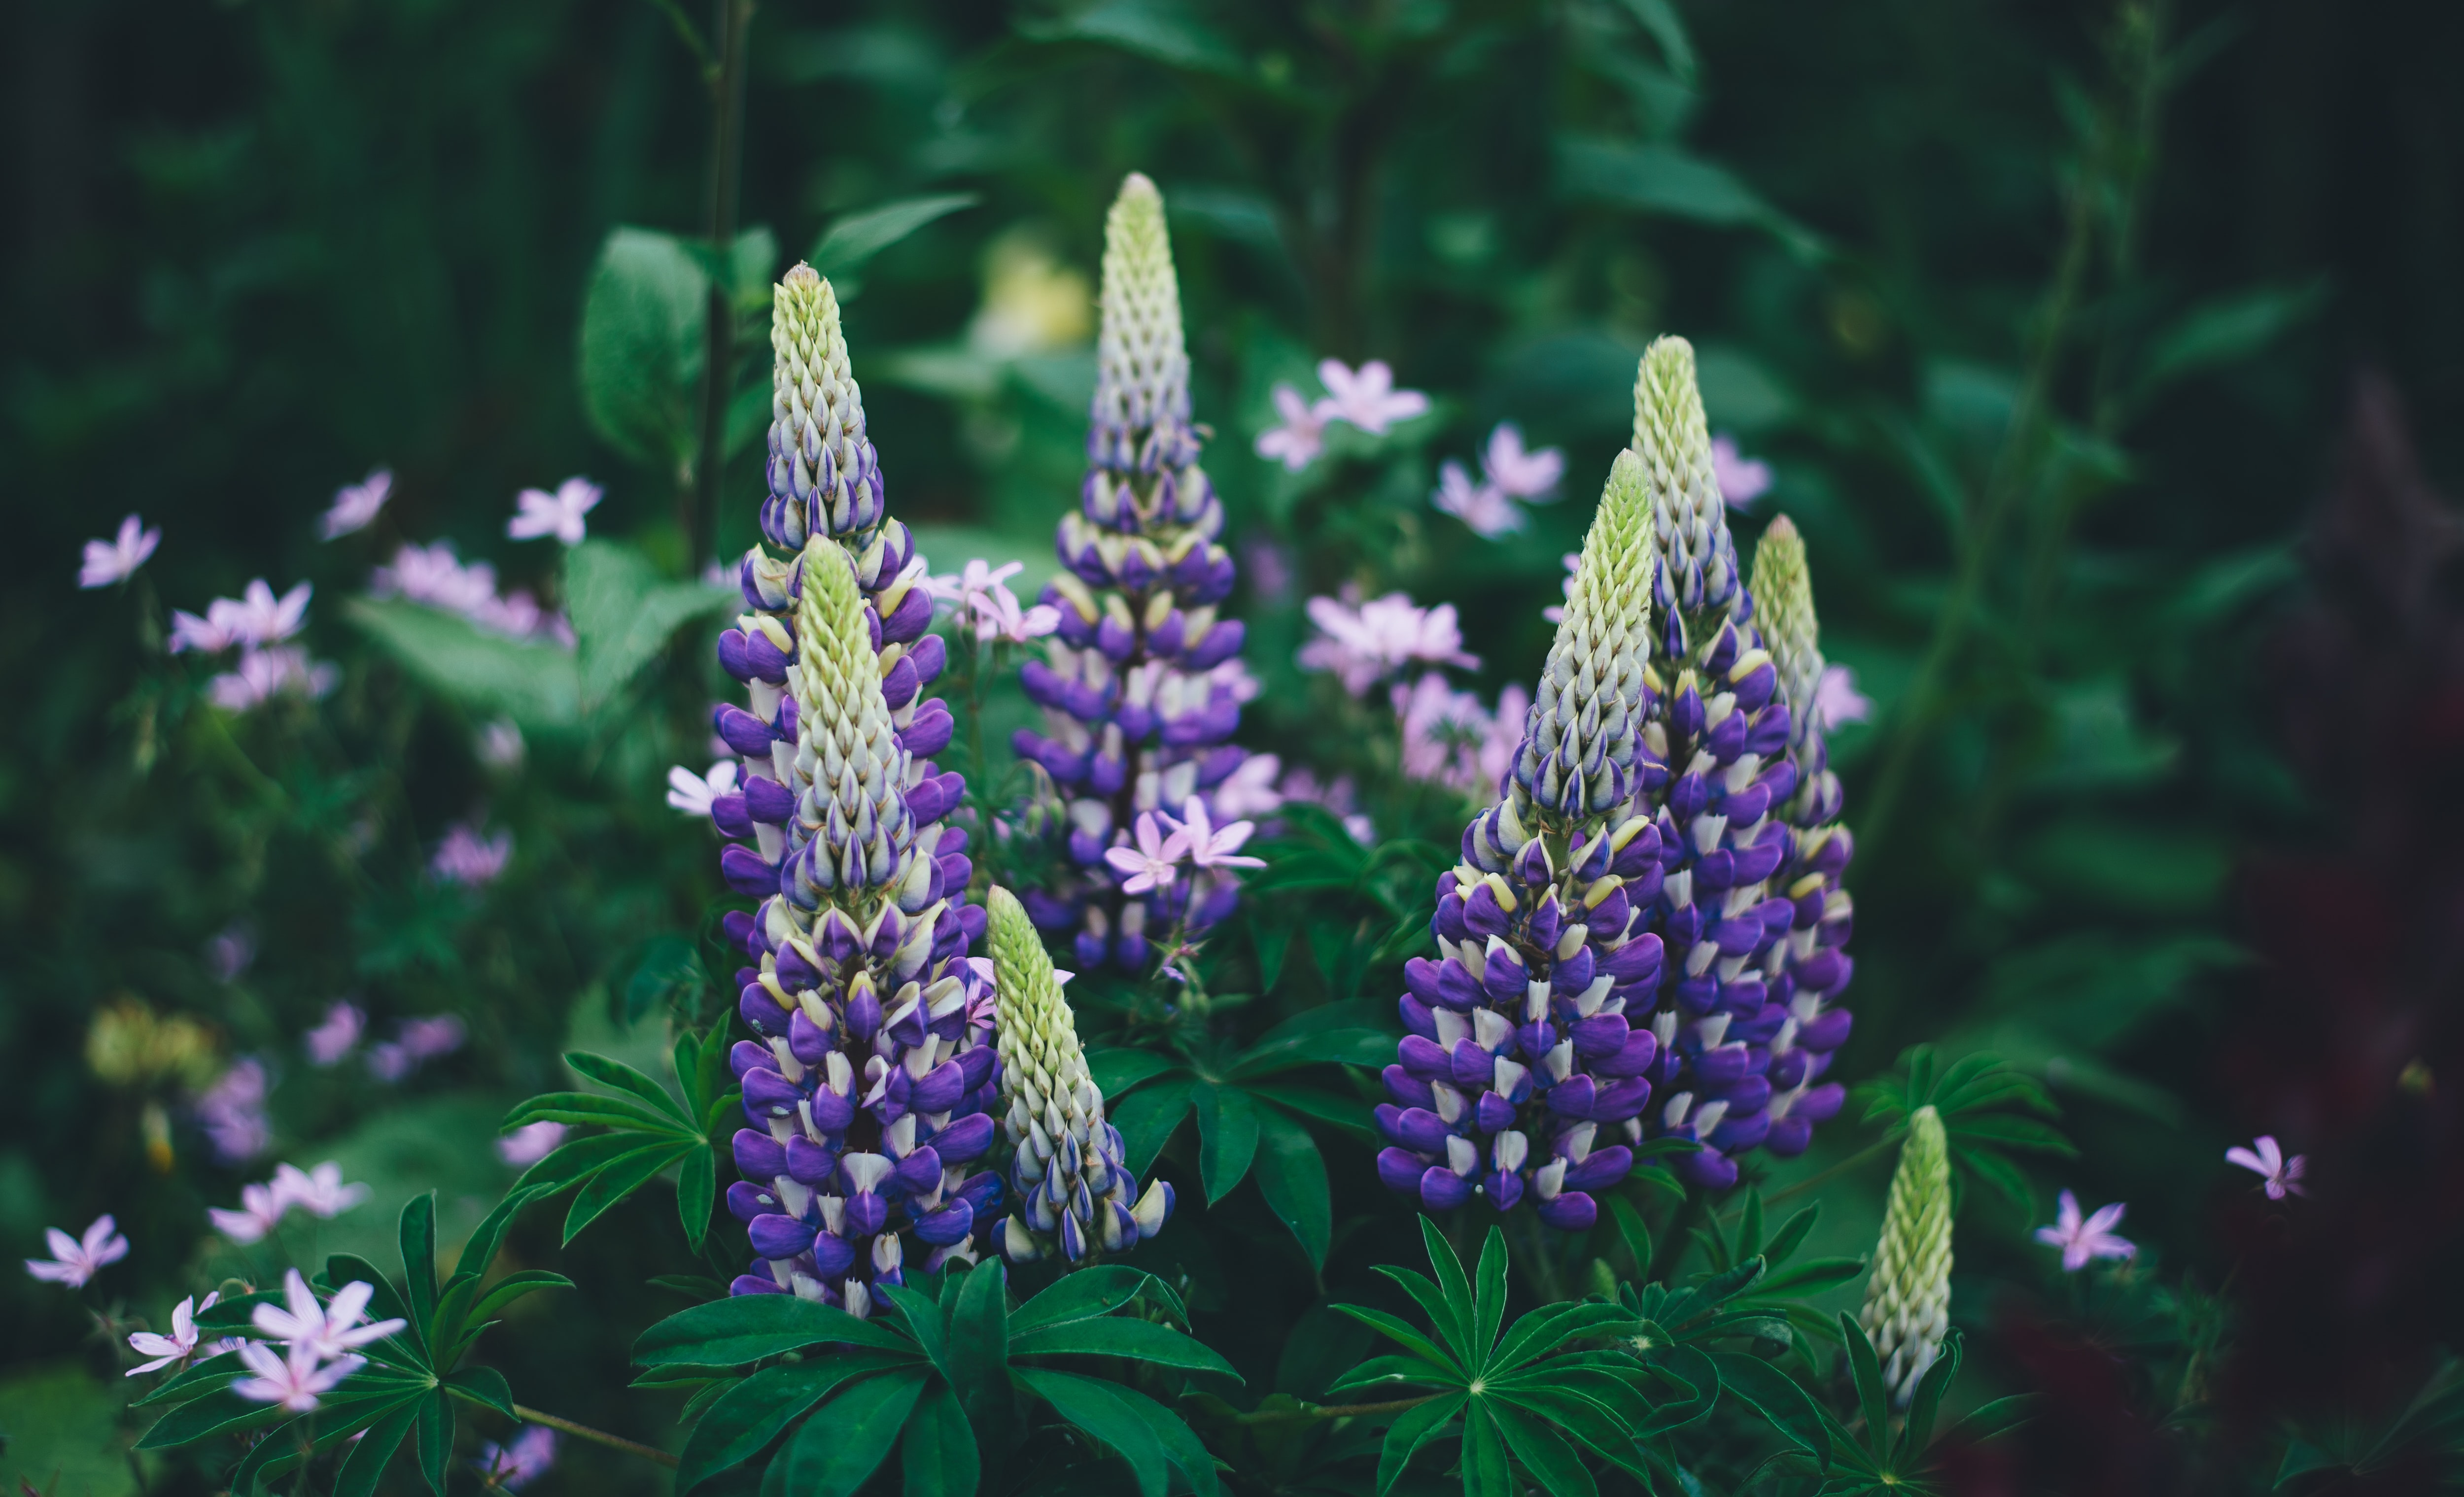 Wild growing dark violet lupine flowers